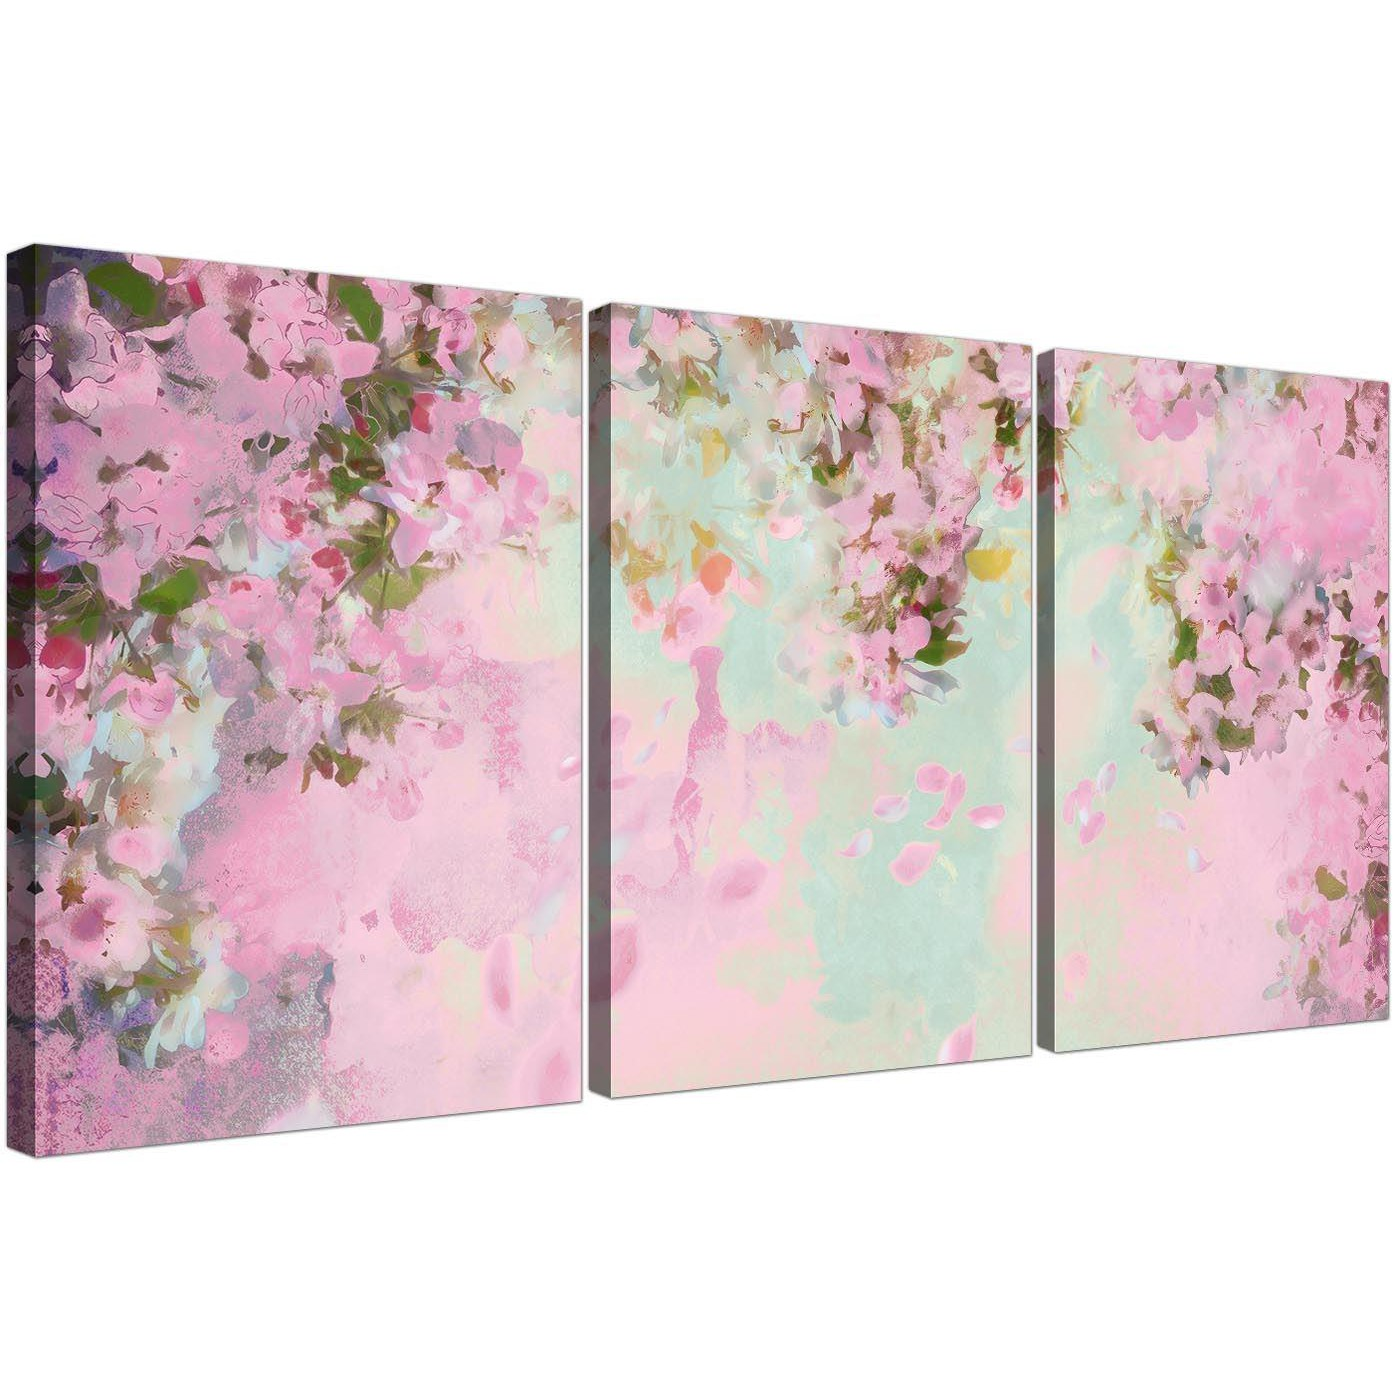 Shabby chic pale dusky pink flowers canvas multi 3 piece 3281 display gallery item 3 cheap shabby chic pale dusky pink flowers floral canvas multi set of 3 3281 for your display gallery item 4 mightylinksfo